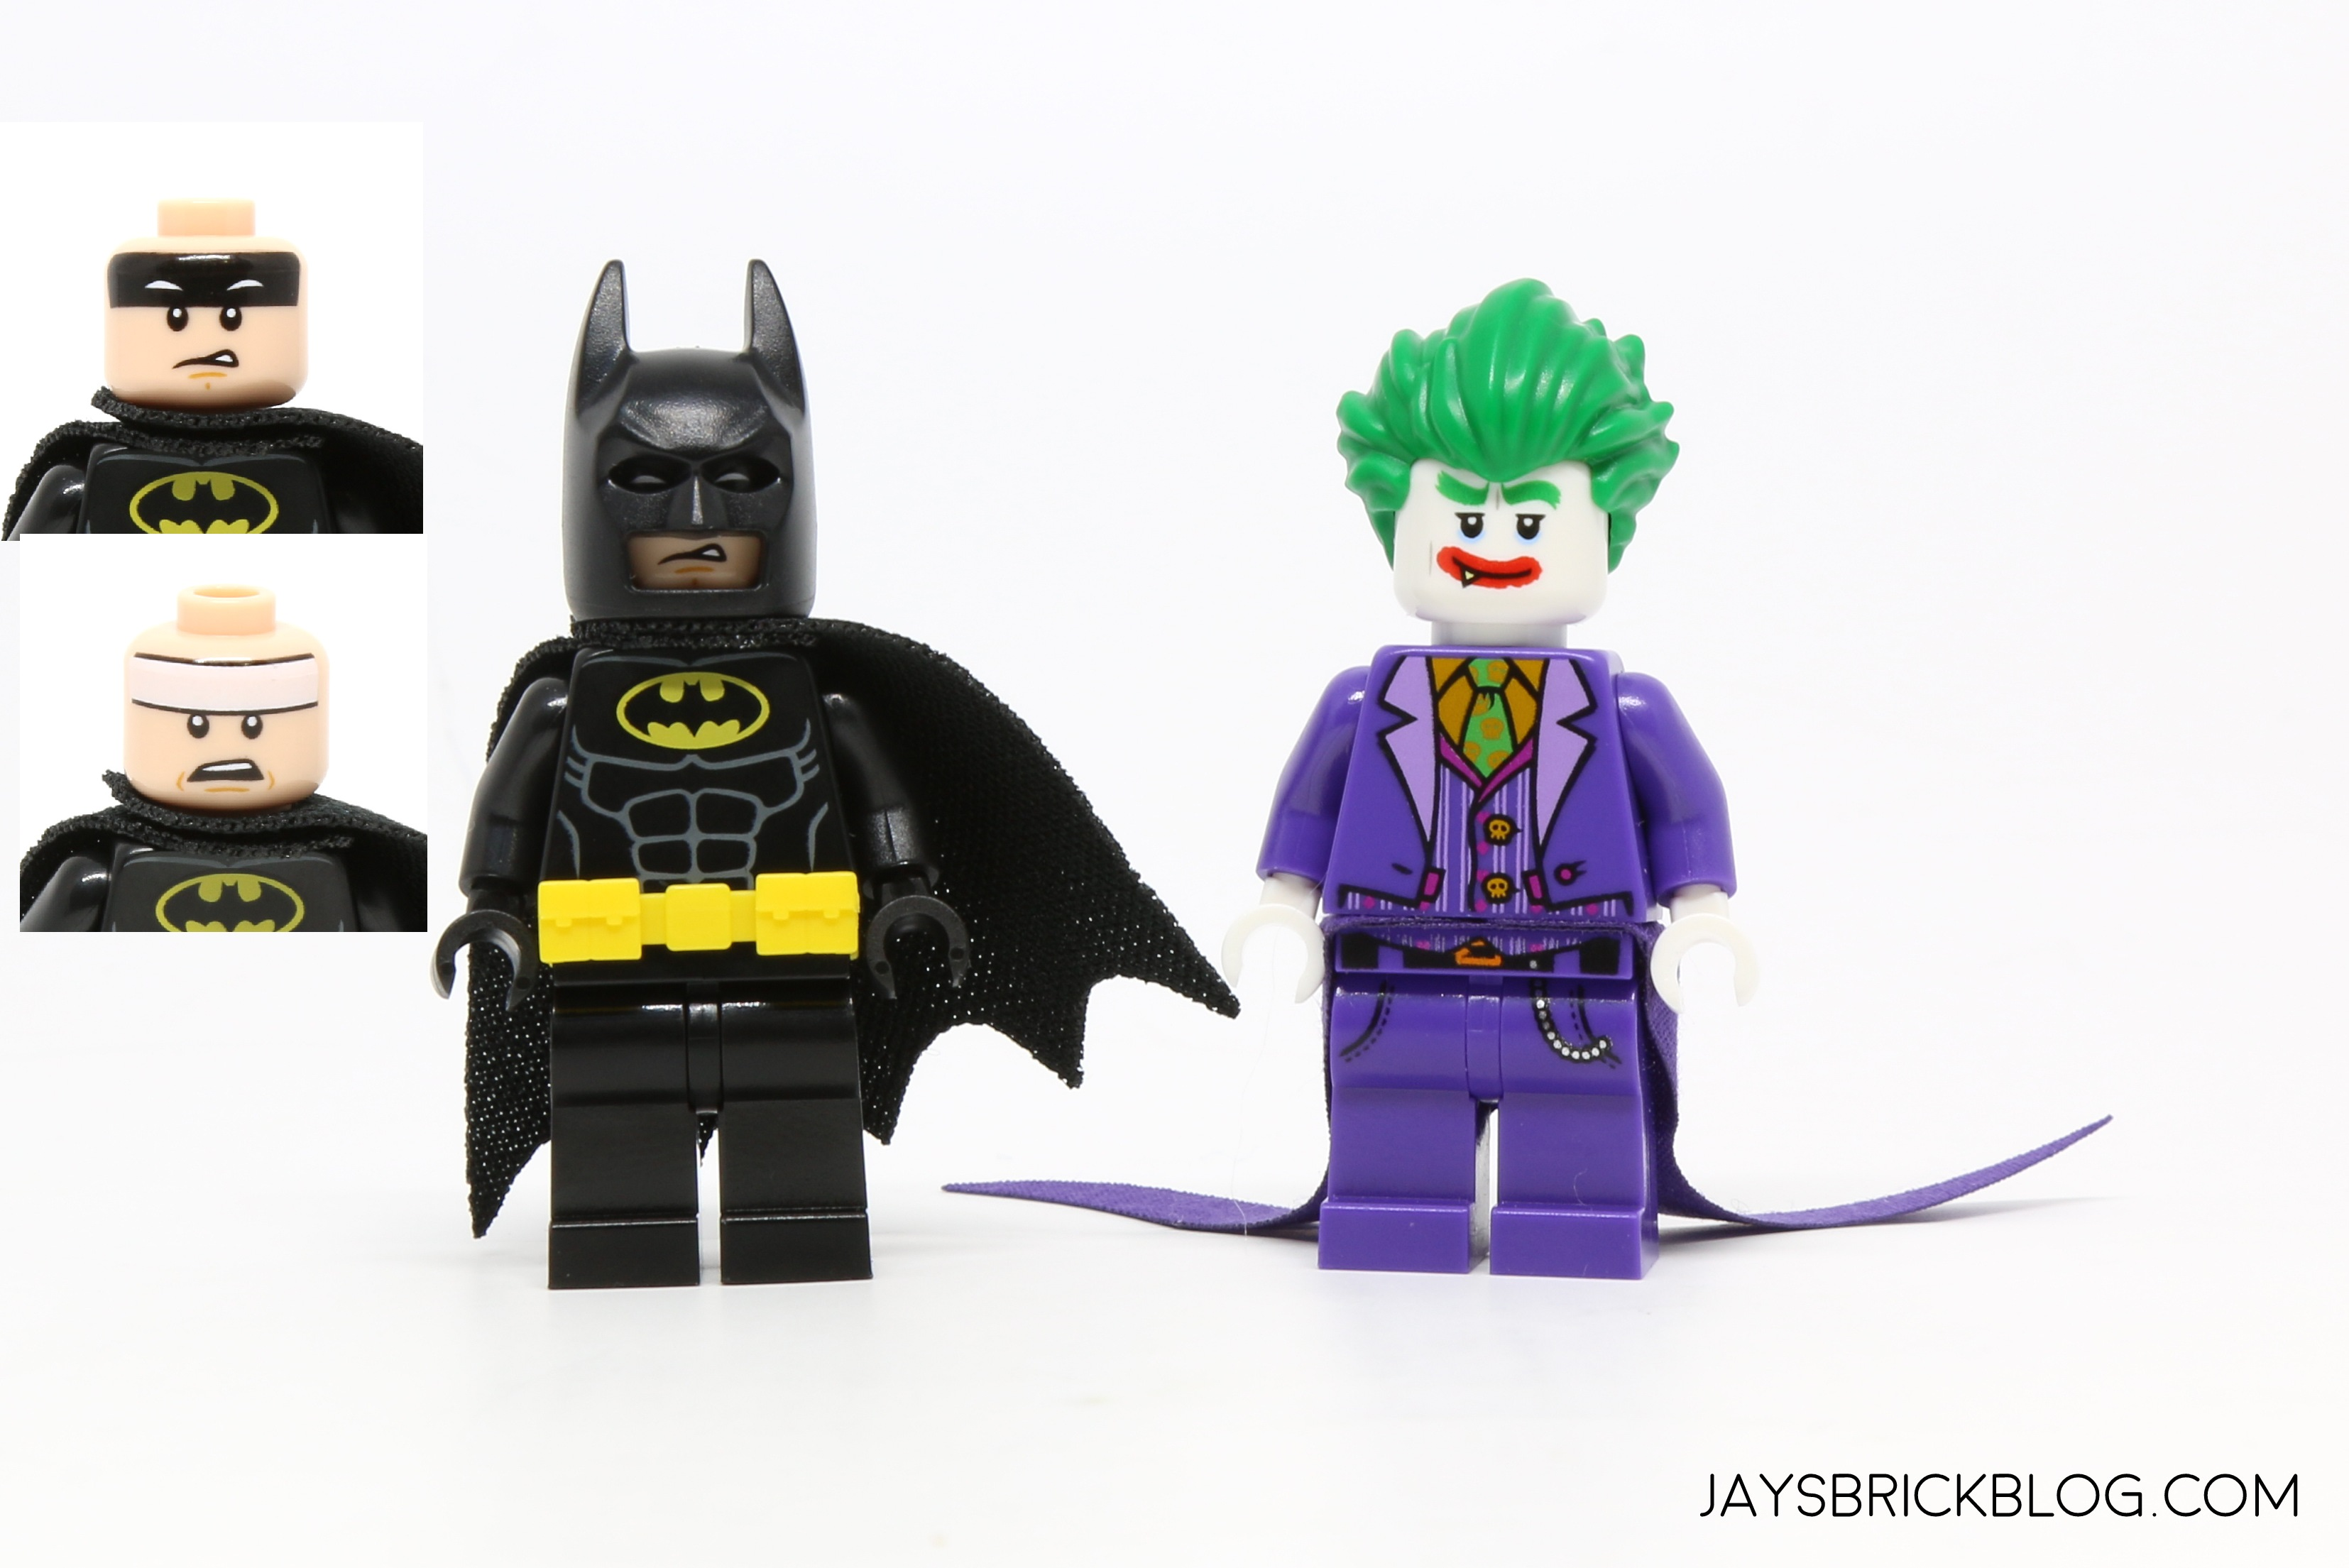 Hereu0027s a look at Batmanu0027s alternate faces which is the same one as you get from 70912 Arkham Asylum 70907 Killer Croc Tail-Gator and 70900 The Joker ...  sc 1 st  Jayu0027s Brick Blog & Review: LEGO 70908 The Scuttler